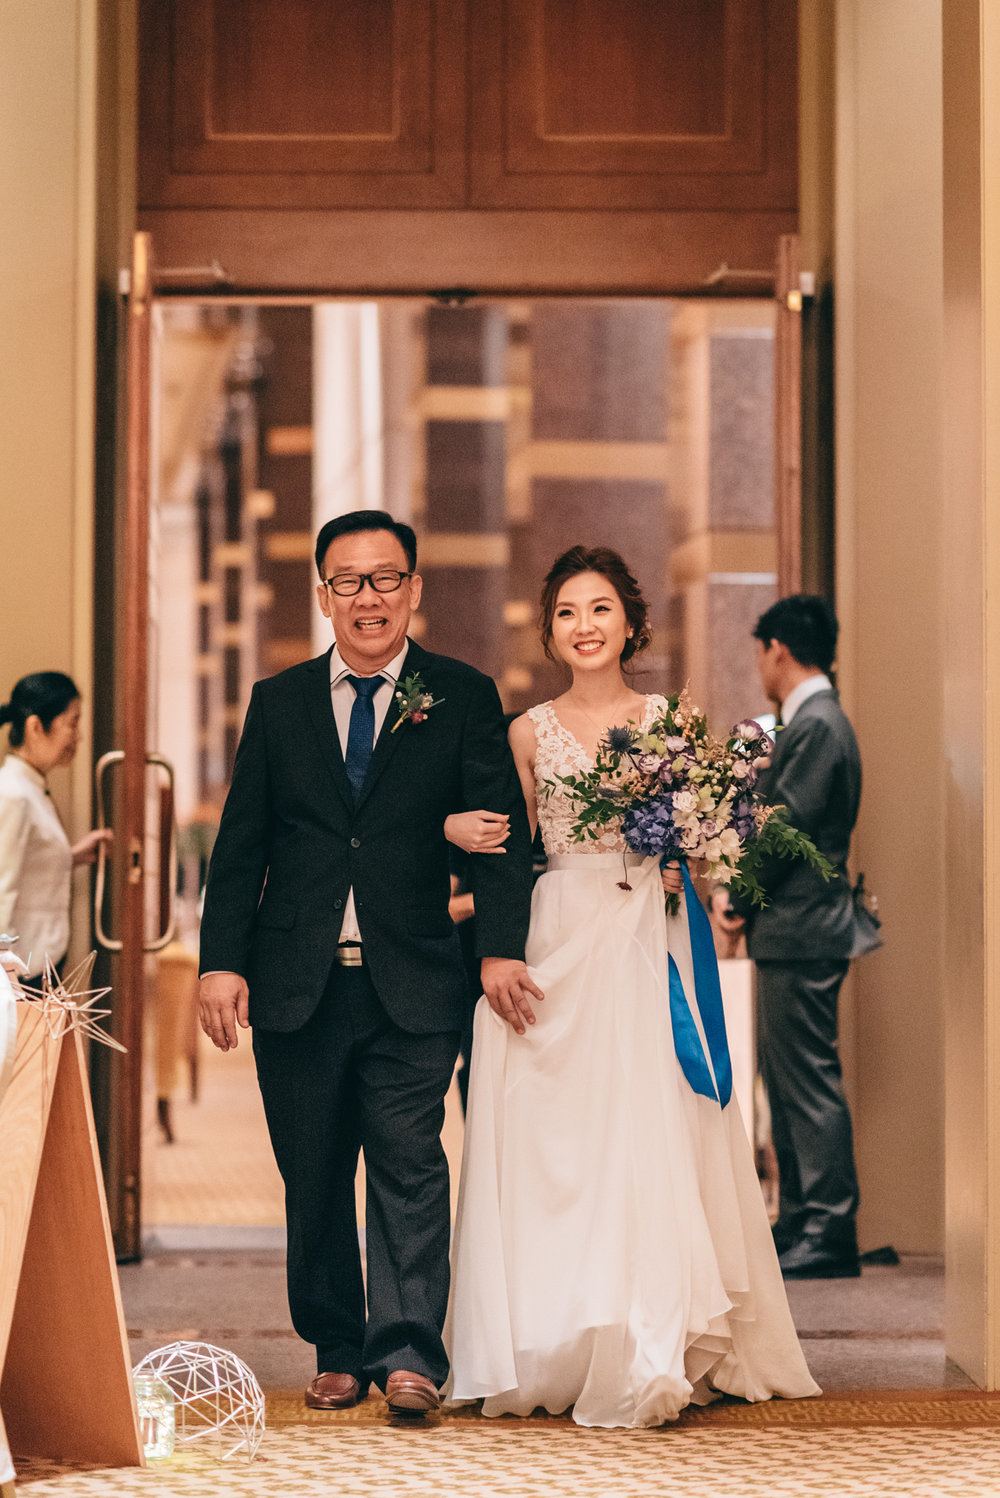 Eunice & Winshire Wedding Day Highlights (resized for sharing) - 130.jpg